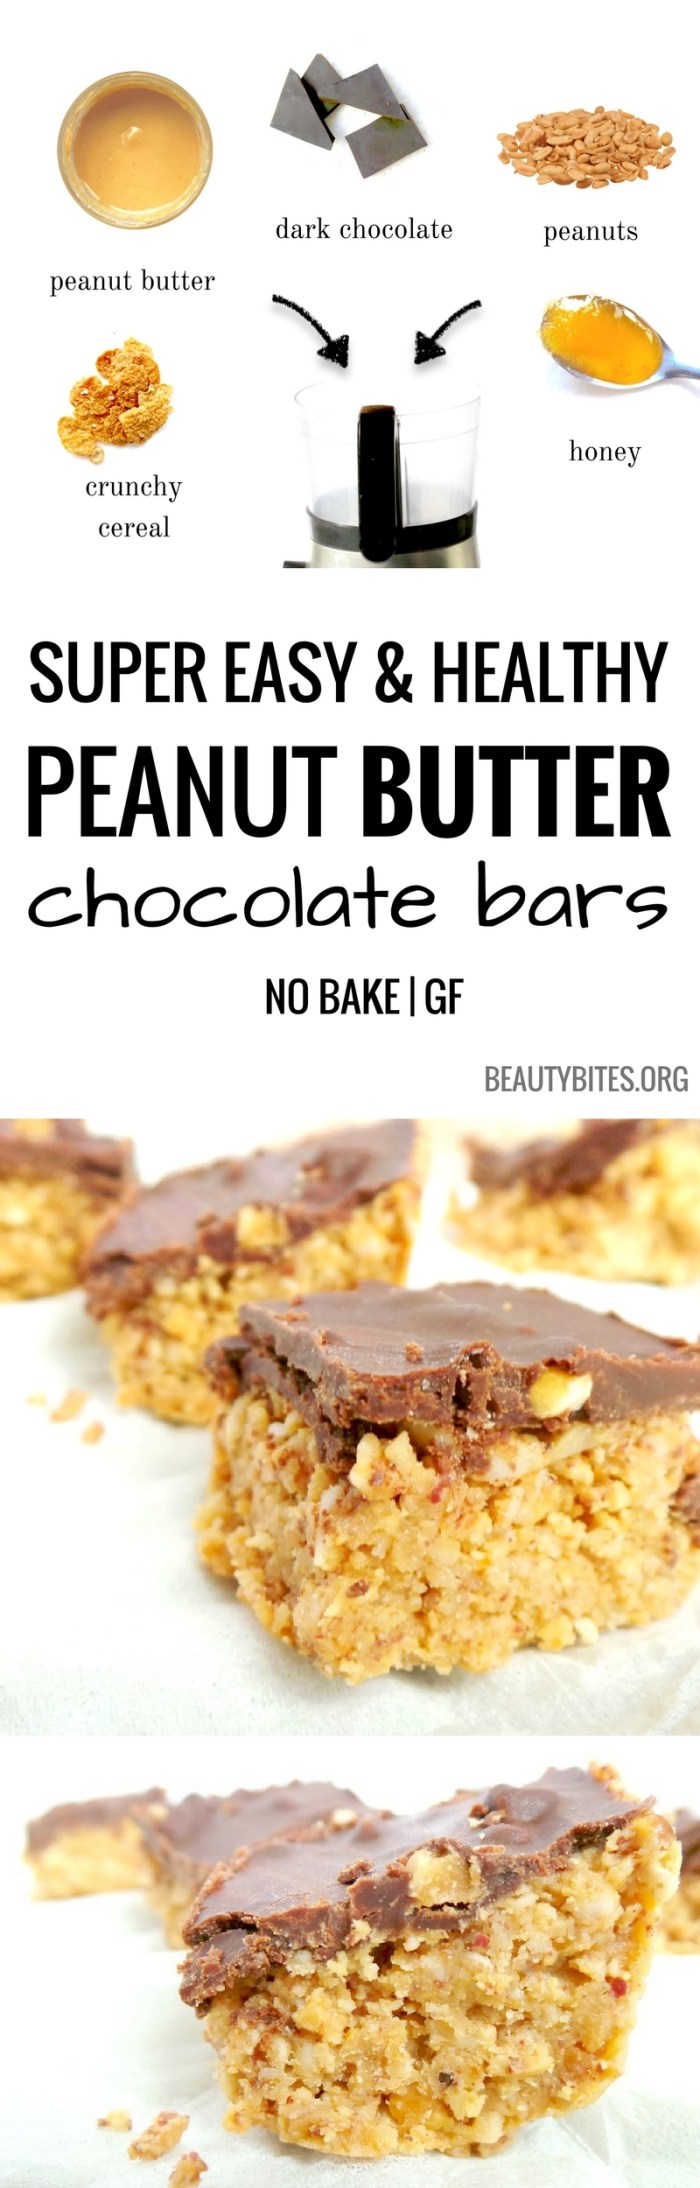 Chocolate peanut butter bites - an easy and delicious healthy treat! Loved these as a healthy snack or even as dessert - definitely satisfied my chocolate AND peanut butter cravings! | easy healthy snacks | www.beautybites.org